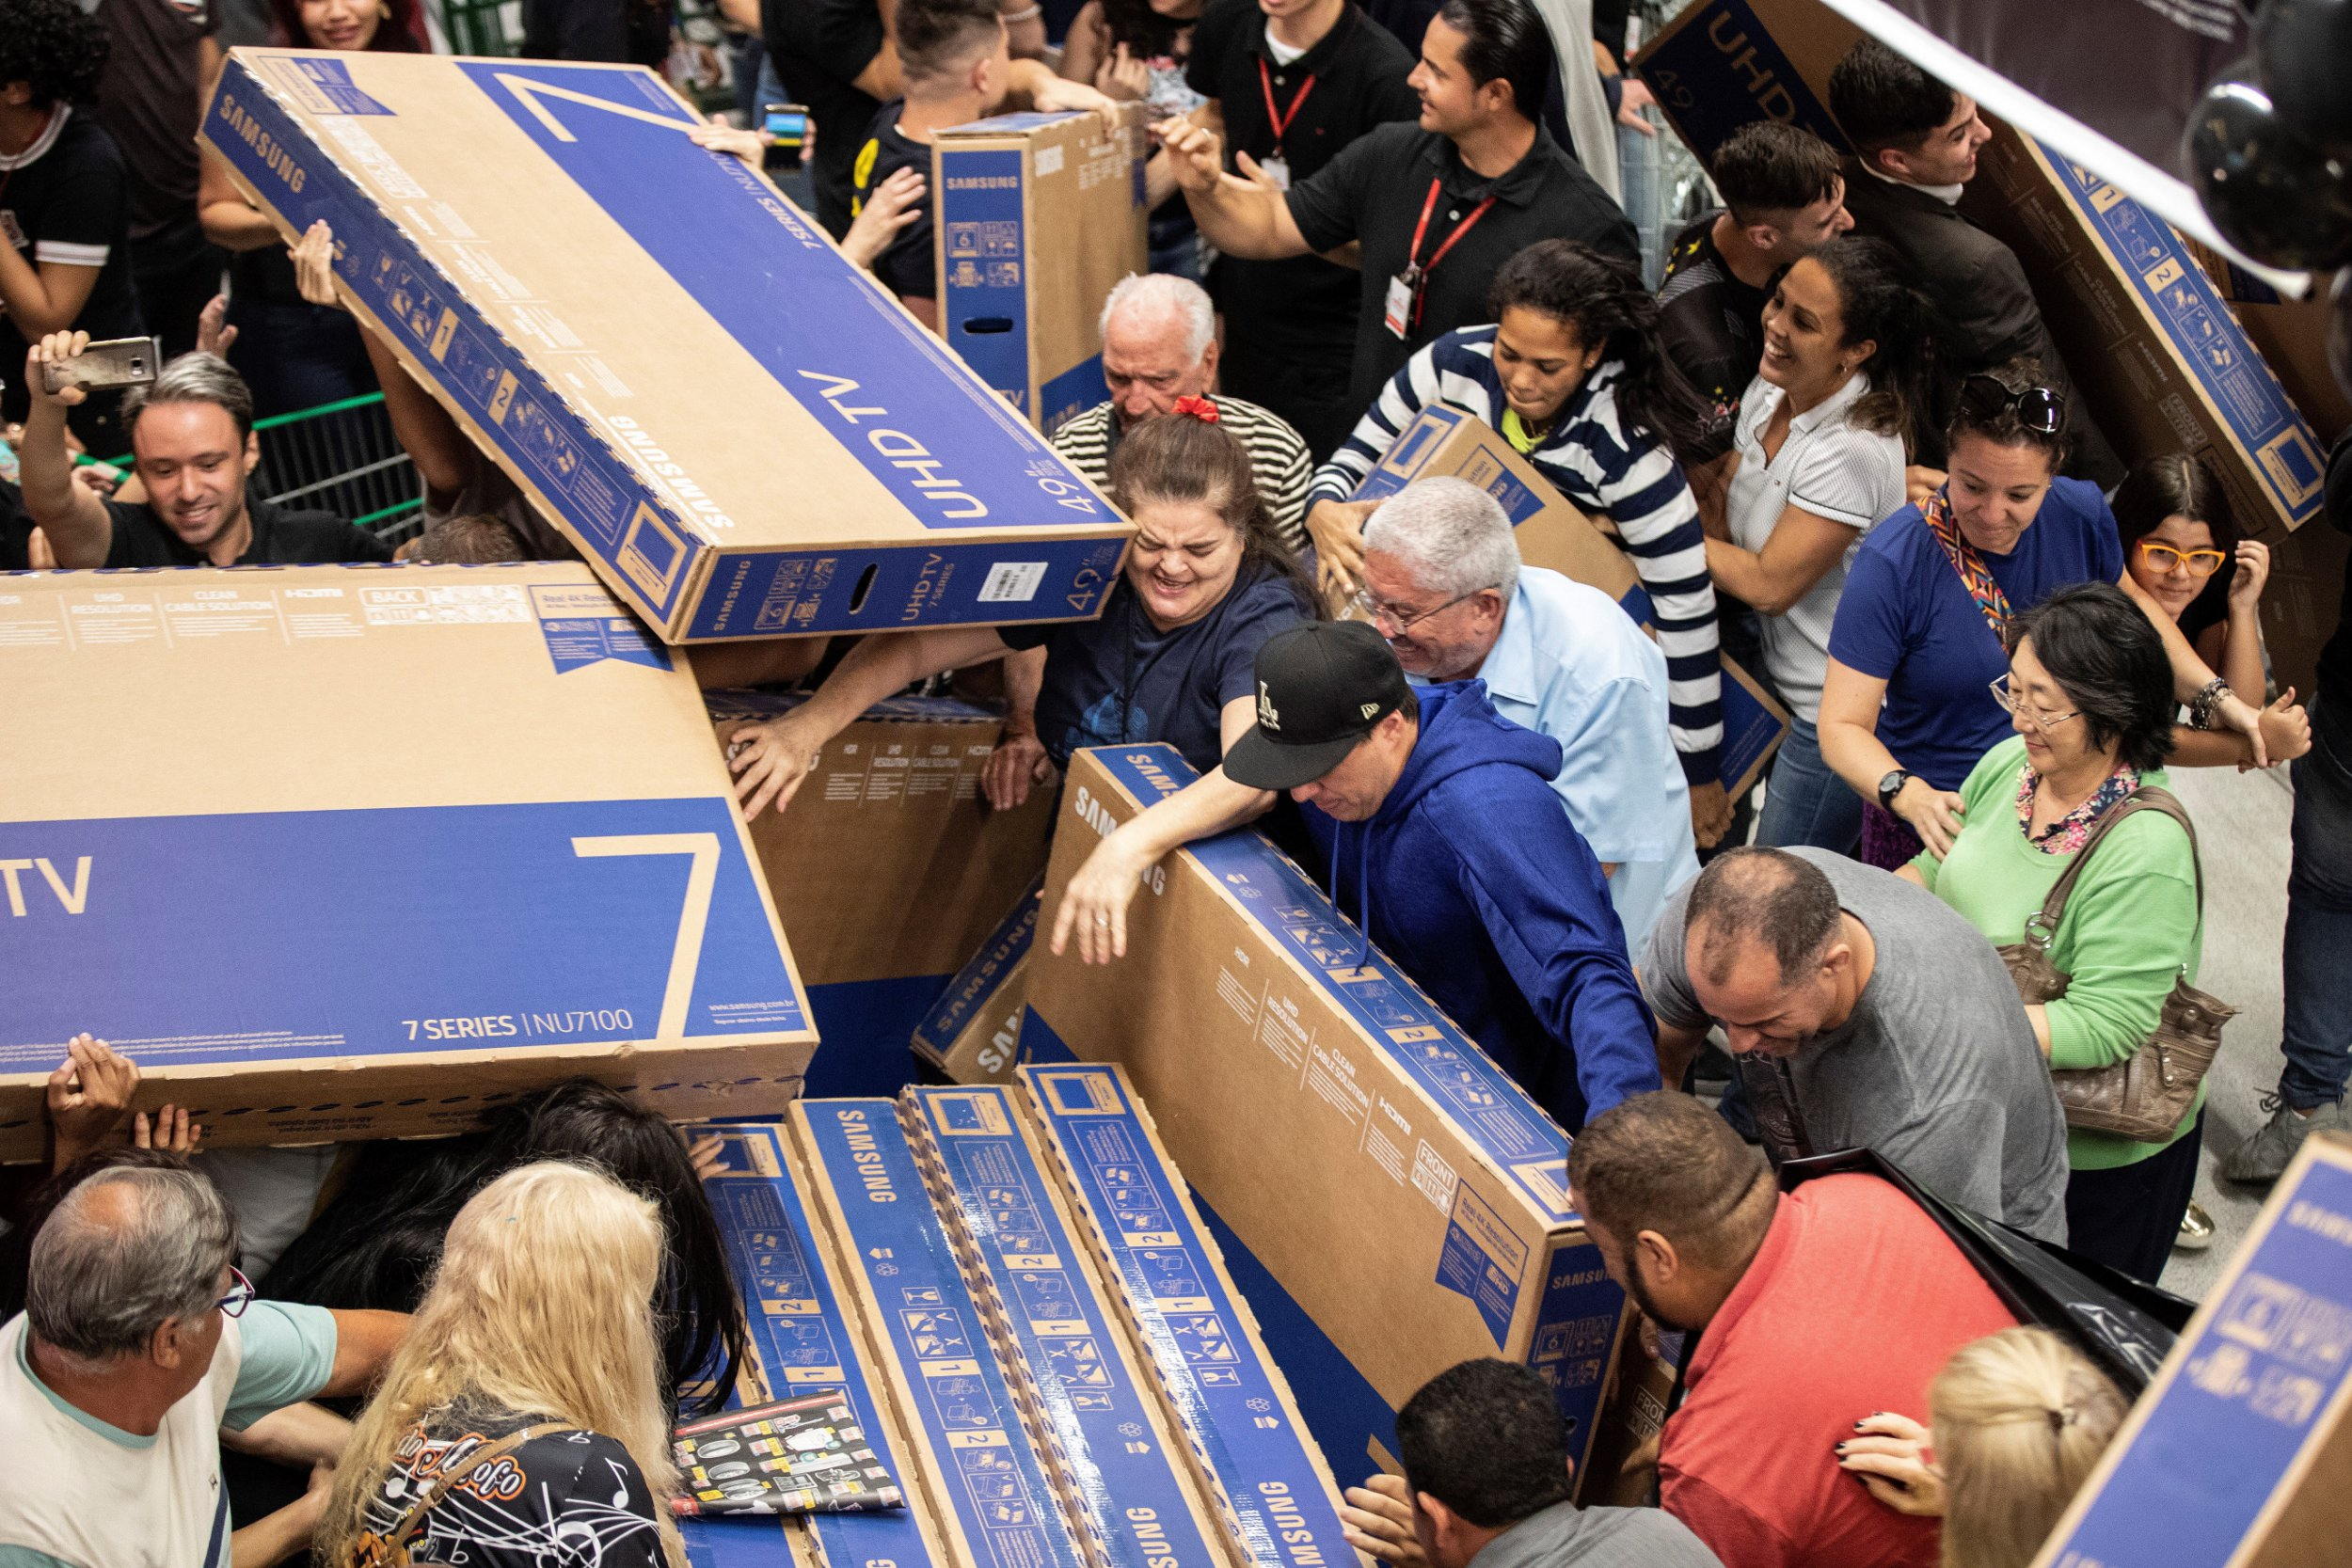 epa07183649 People buy televisions at a supermarket during a Black Friday sale in Sao Paulo, Brazil, 22 November 2018. Black Friday is an day following Thanksgiving Day , annually held on the fourth Thursday in November, in the United States and generally marks the beginning of the Christmas shopping season. EPA/SEBASTIAO MOREIRA